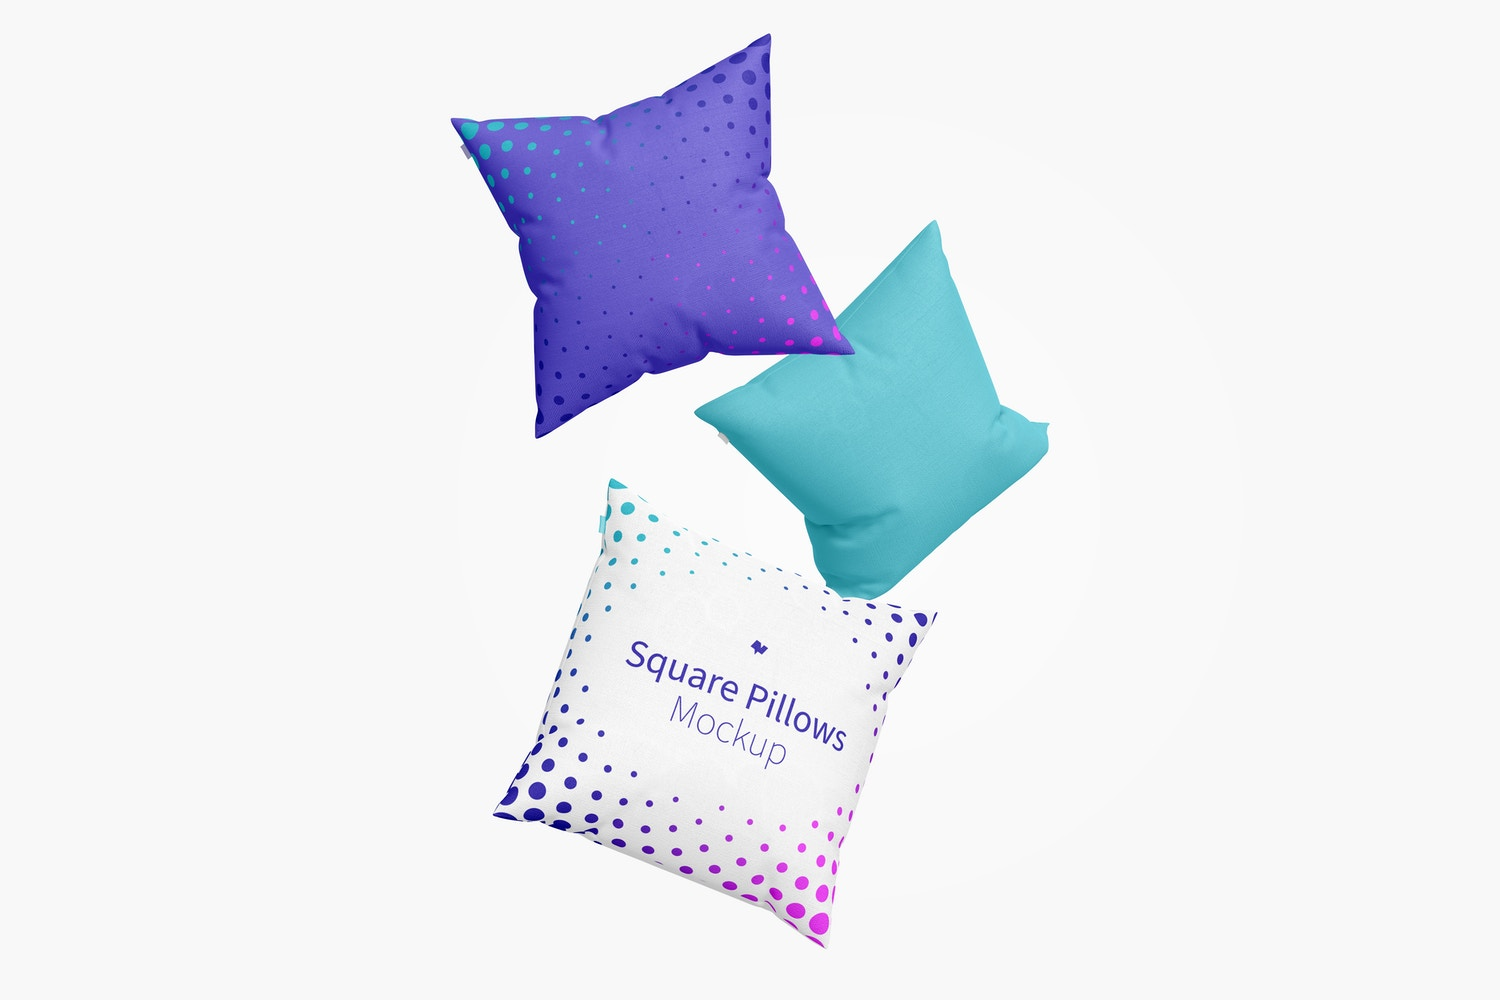 Square Pillows Mockup, Floating